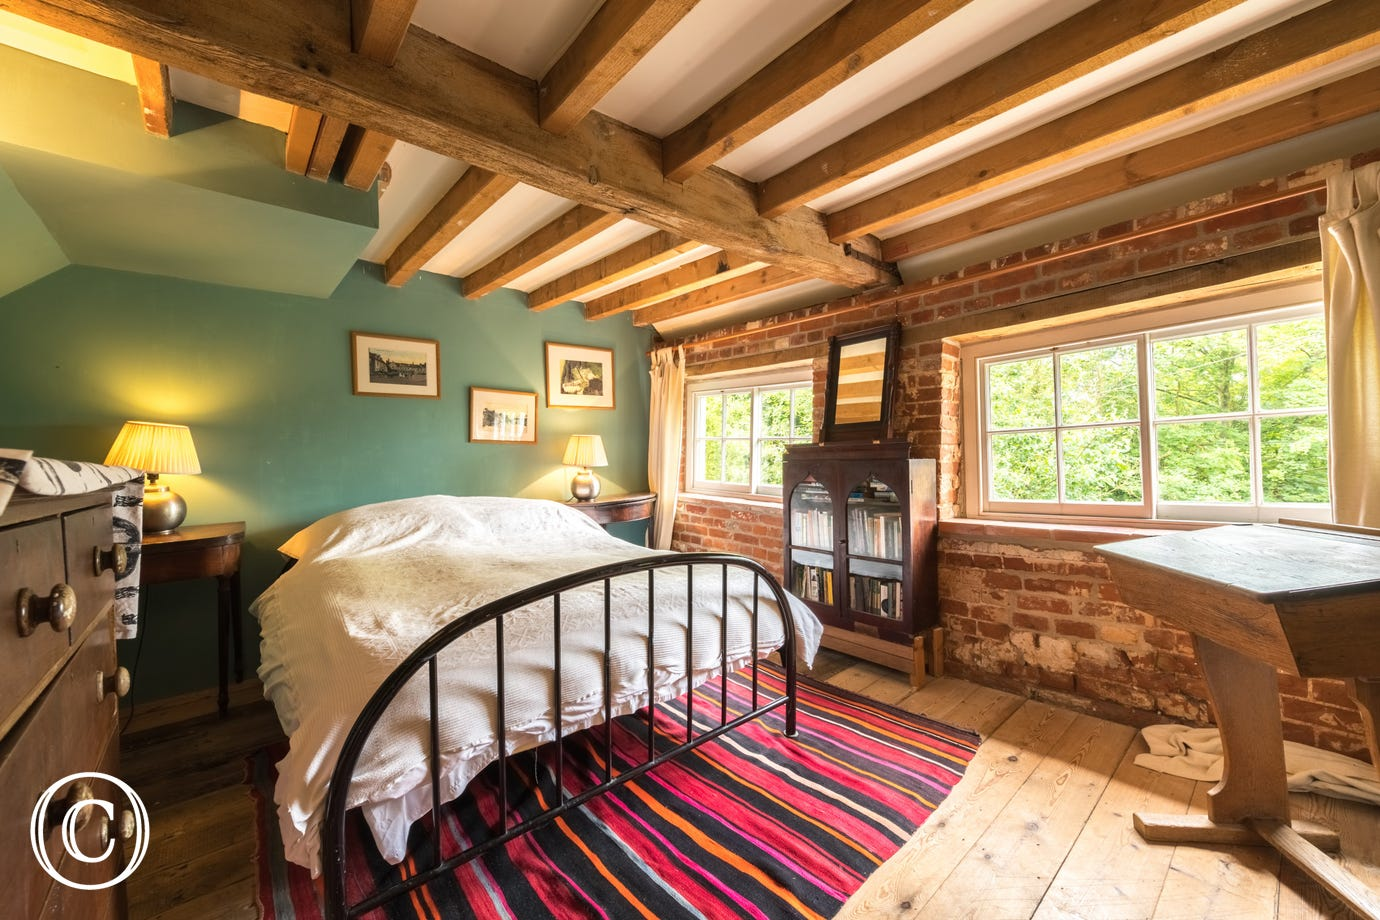 A double bedded room with pretty views over the mill pond